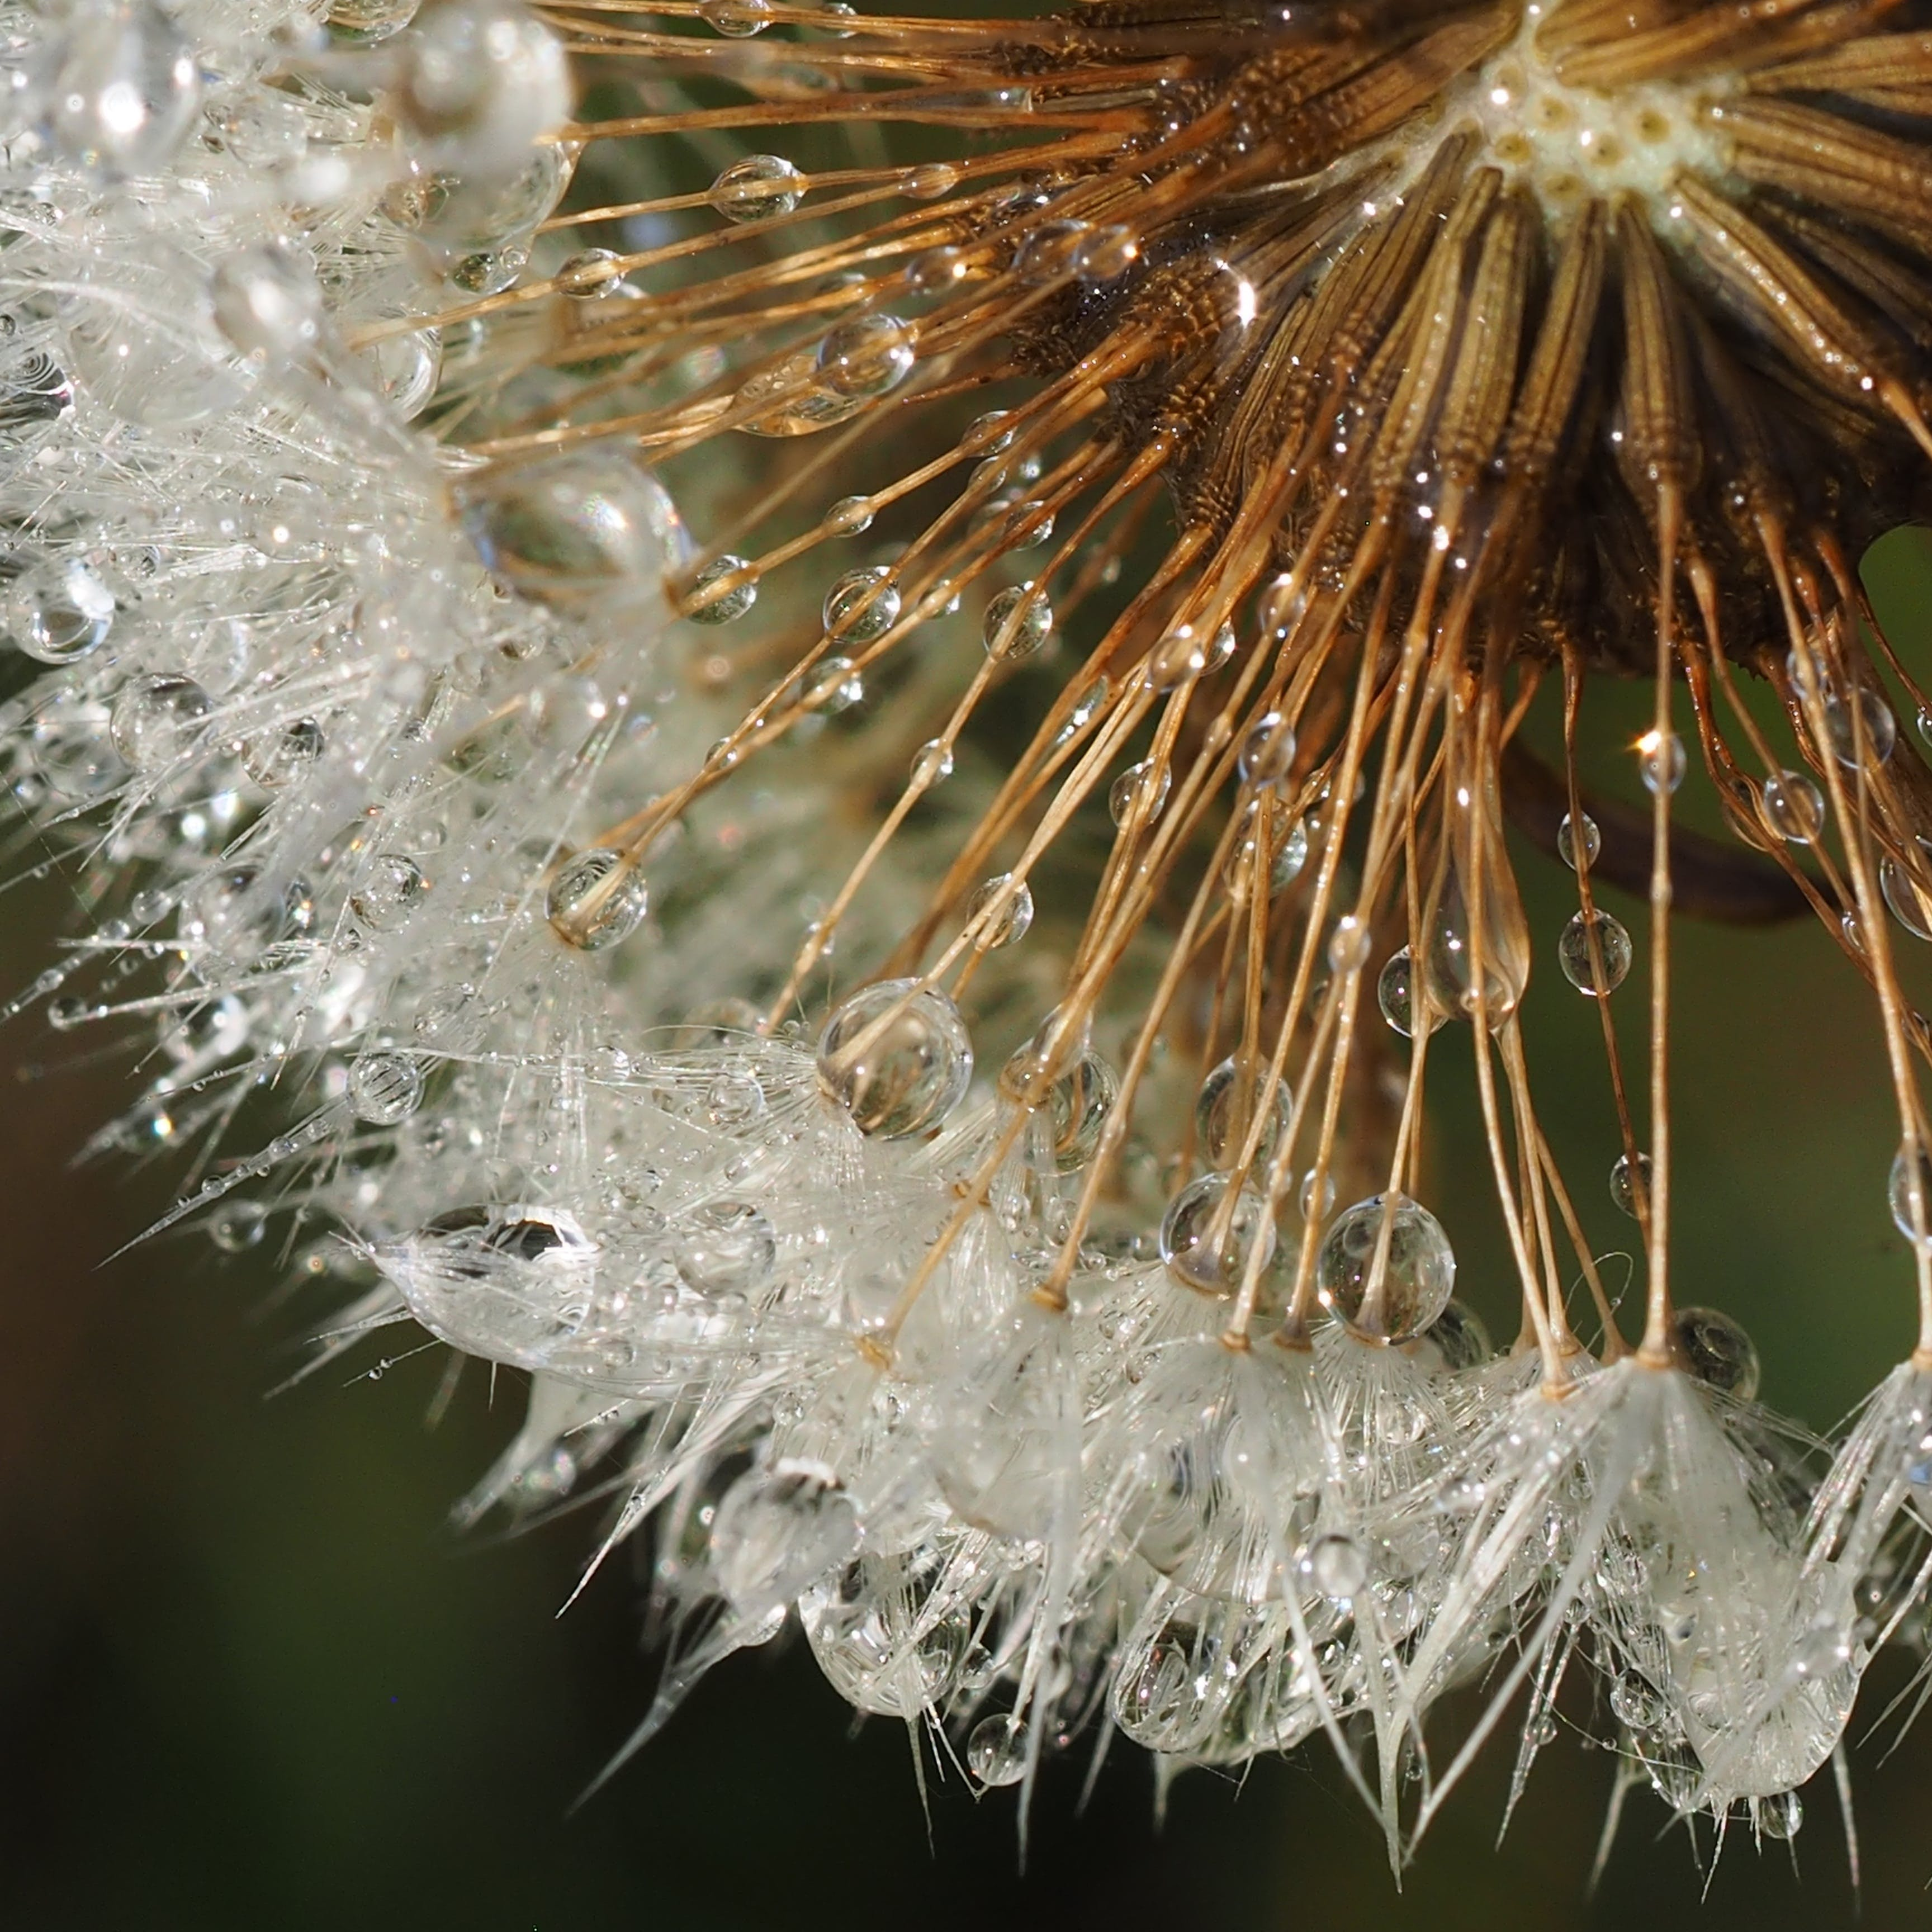 Macro Photography of White Dandelion Flower in Bloom With Water Droplets